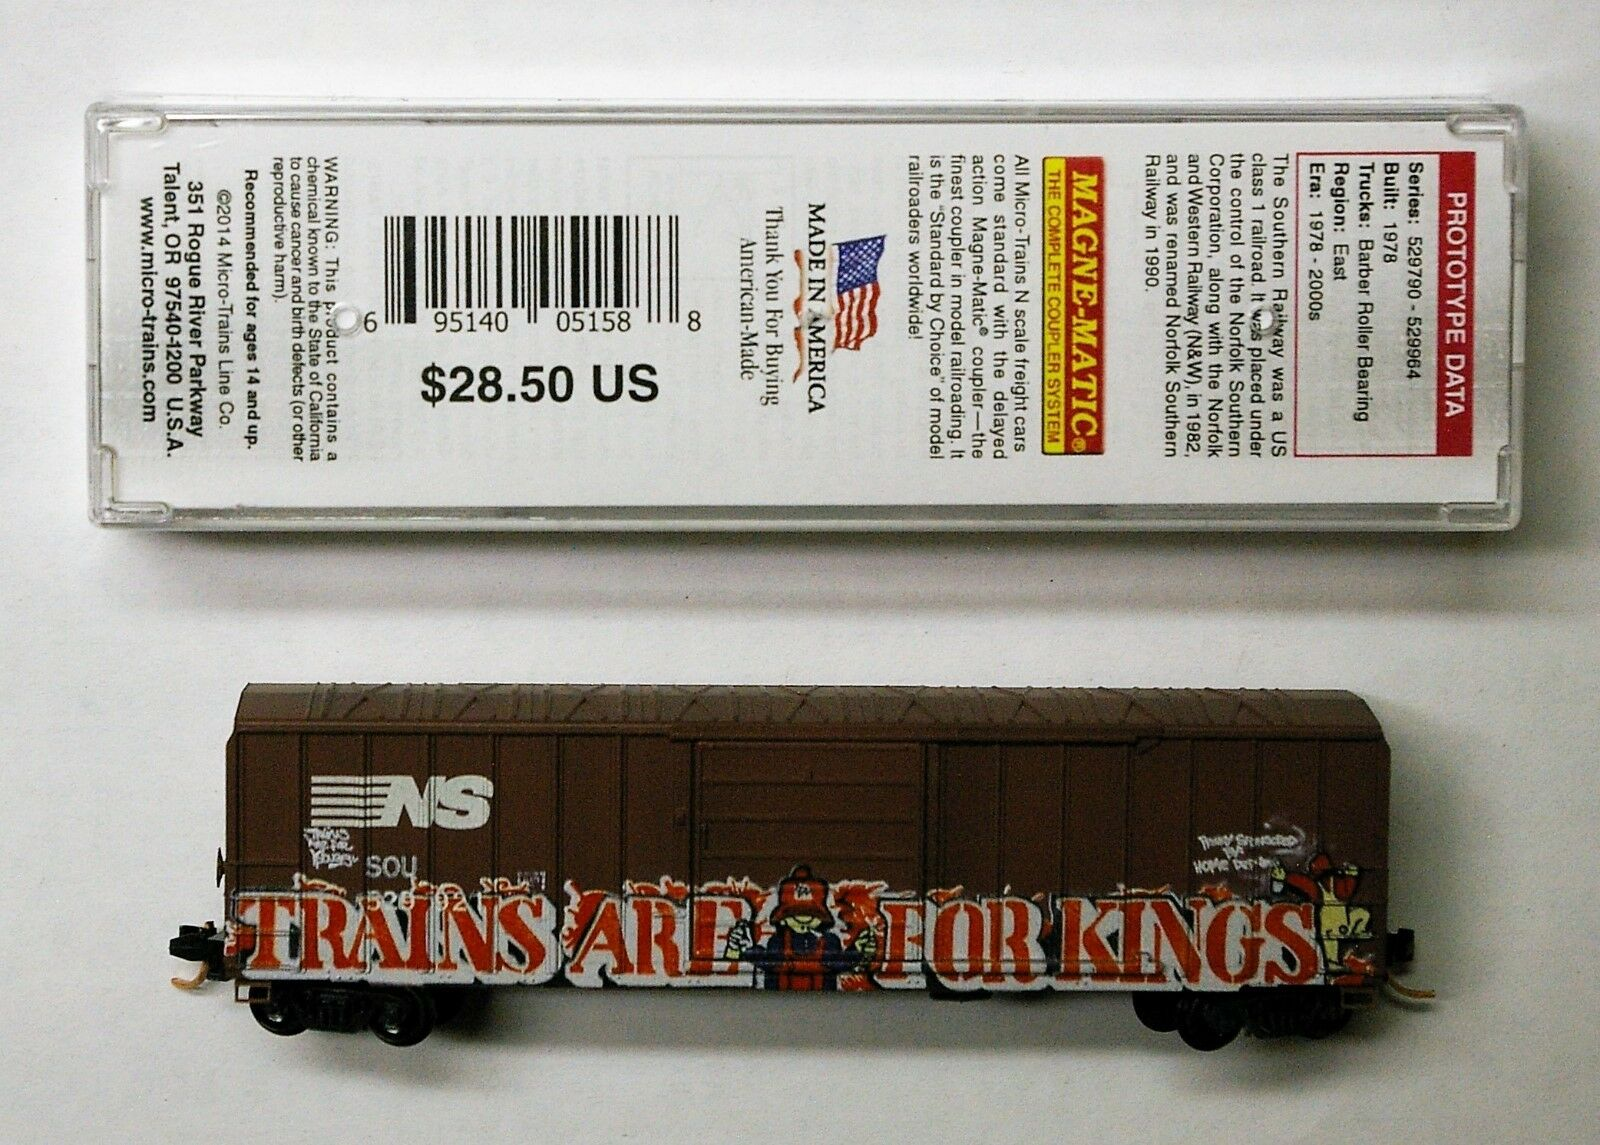 MTL Micro-Trains 25800 NS 529921  Trains are for Kings   FW